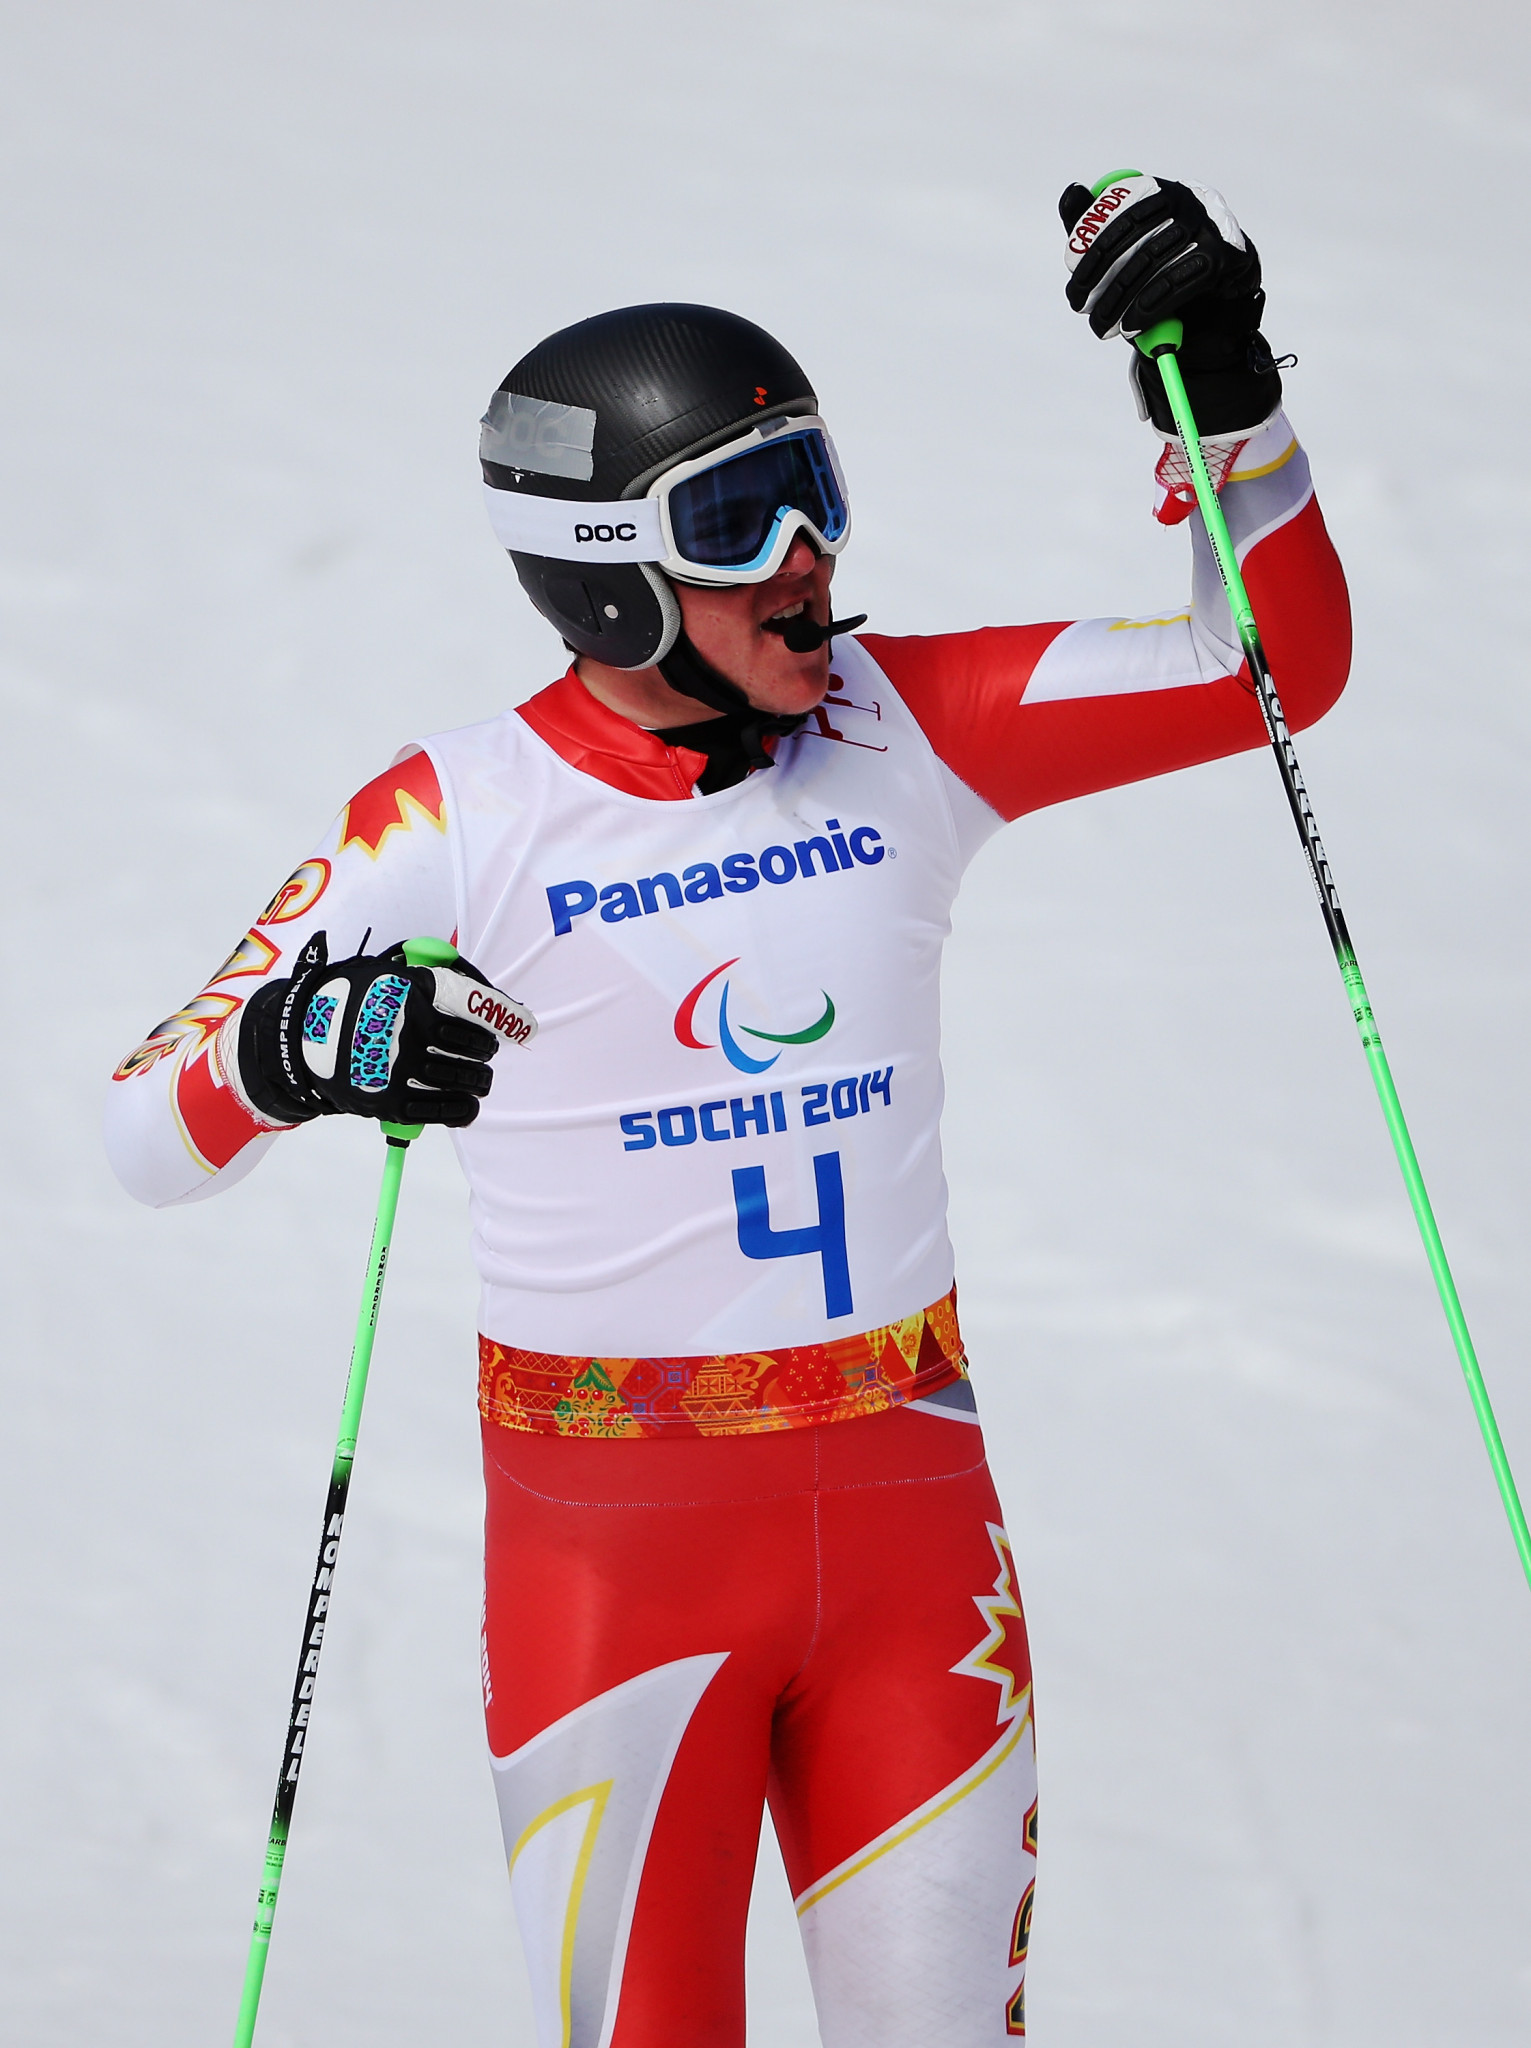 Mac Marcoux won one gold medal and two bronze at Sochi 2014 ©Getty Images